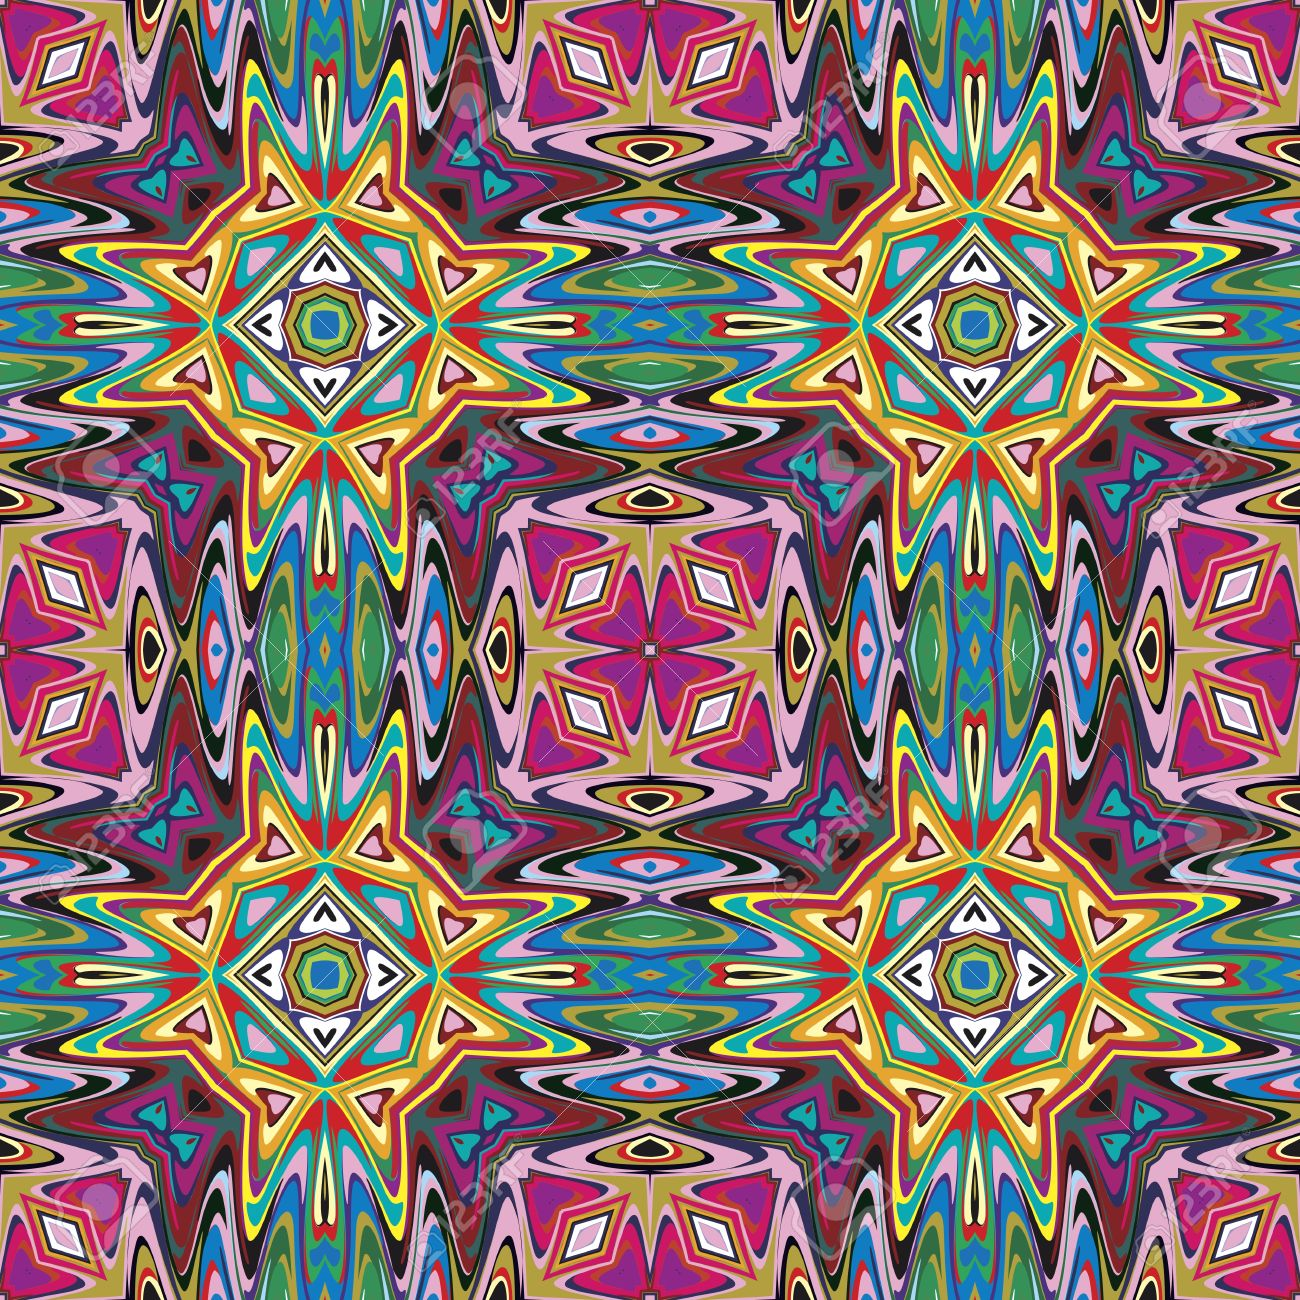 Modern Mexican textile design Seamless vector pattern inspired by ancient motifs from Incas, Aztec in contemporary design and brilliant colors - 20824338